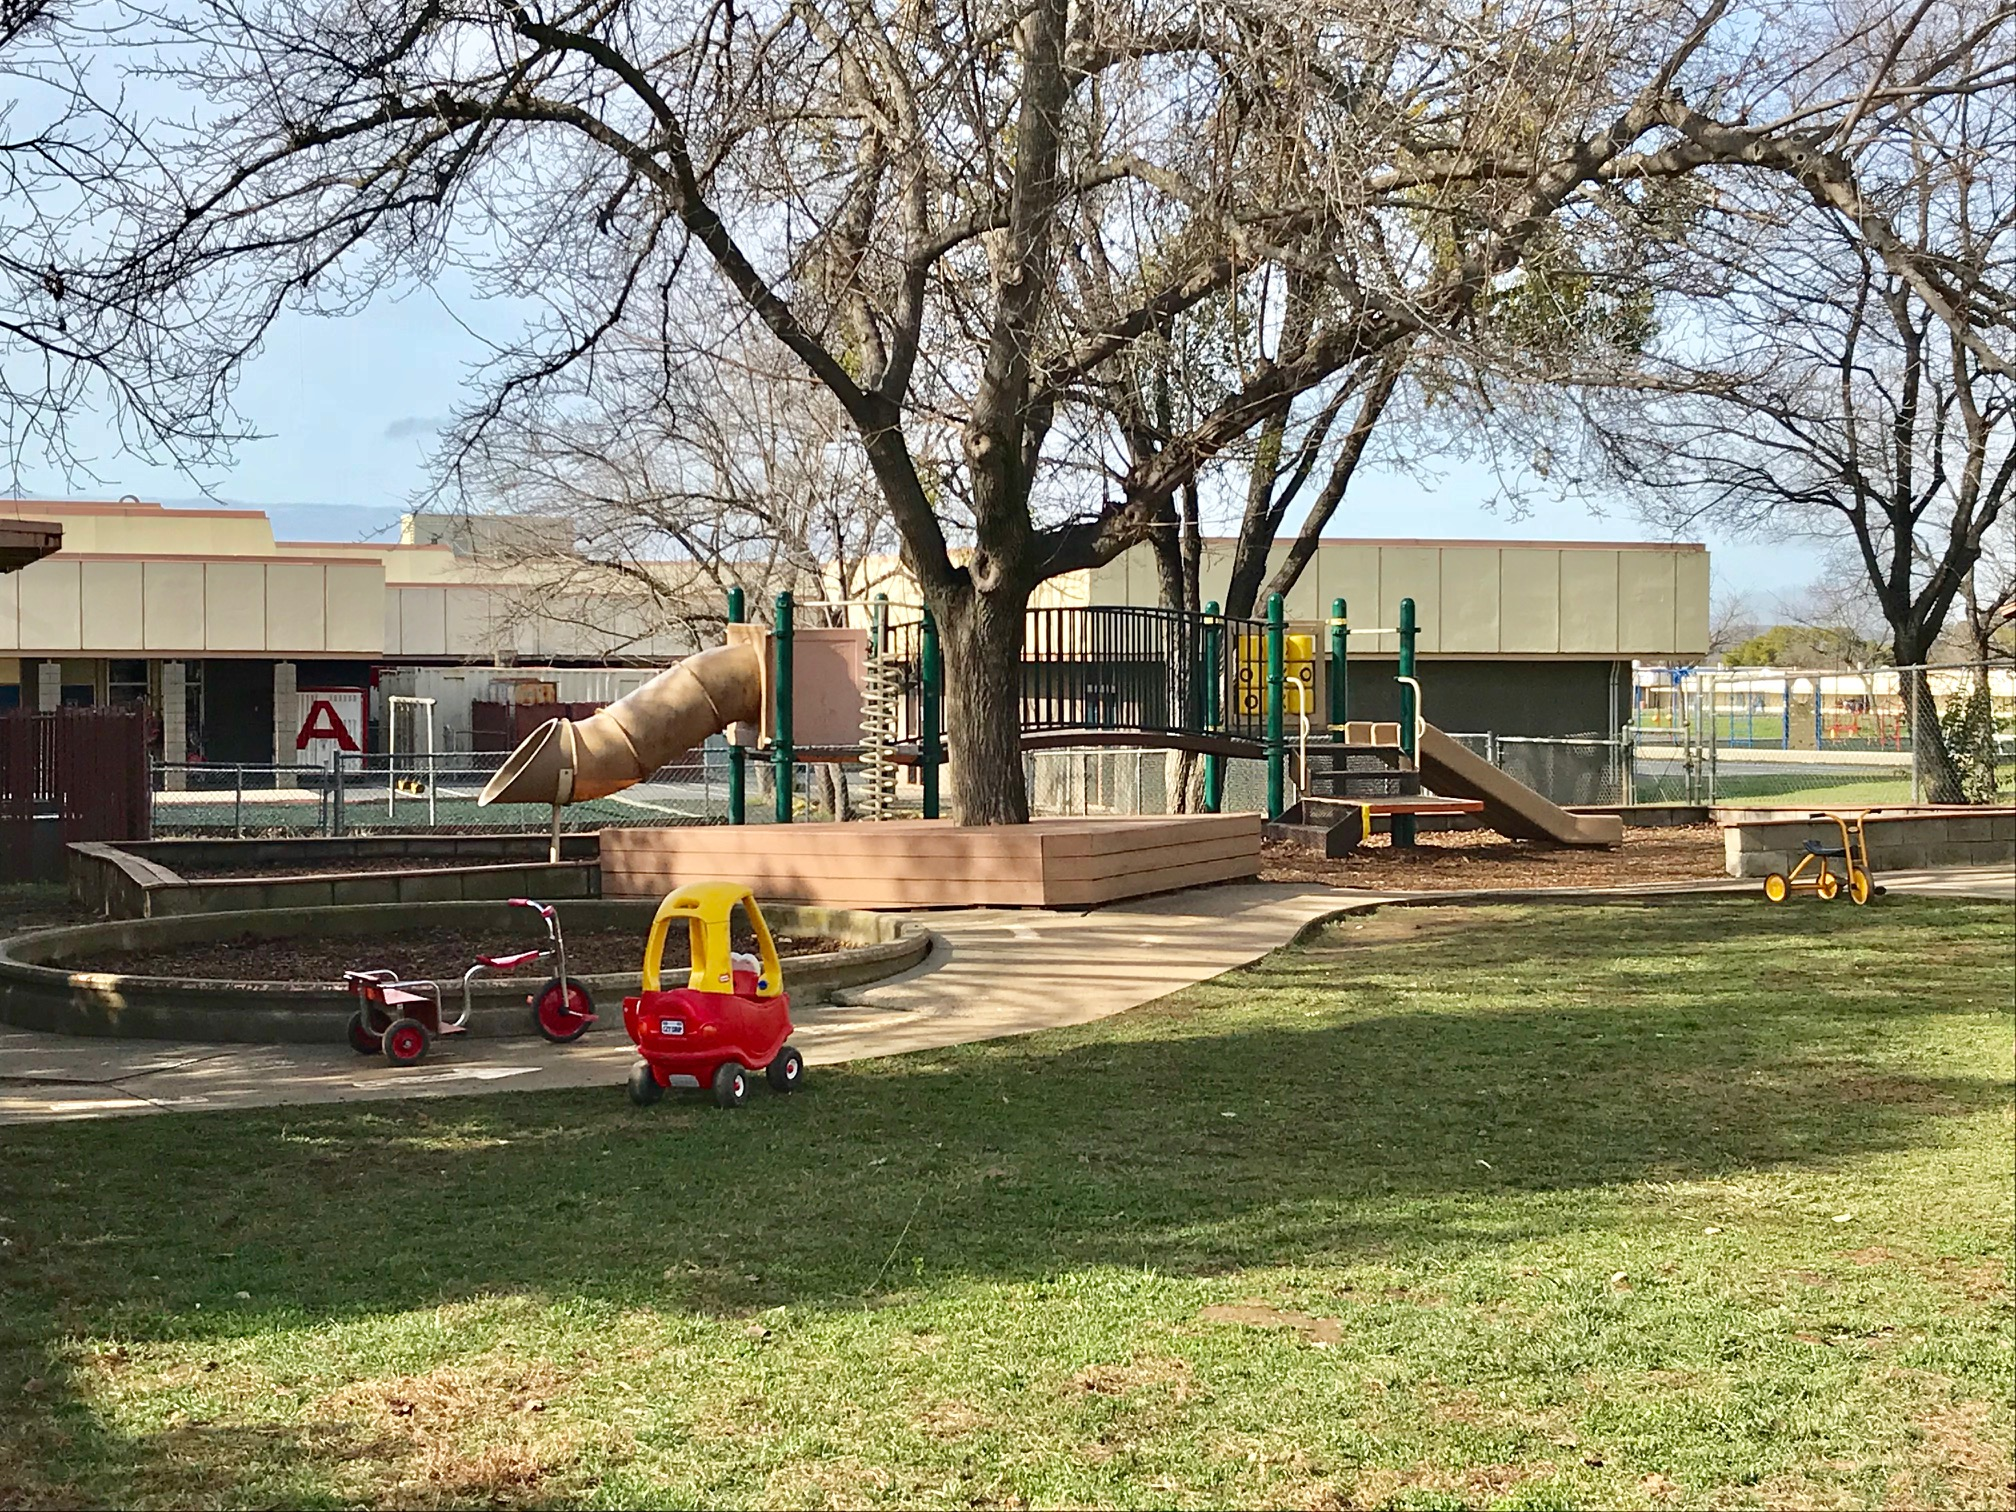 Playground at SDO